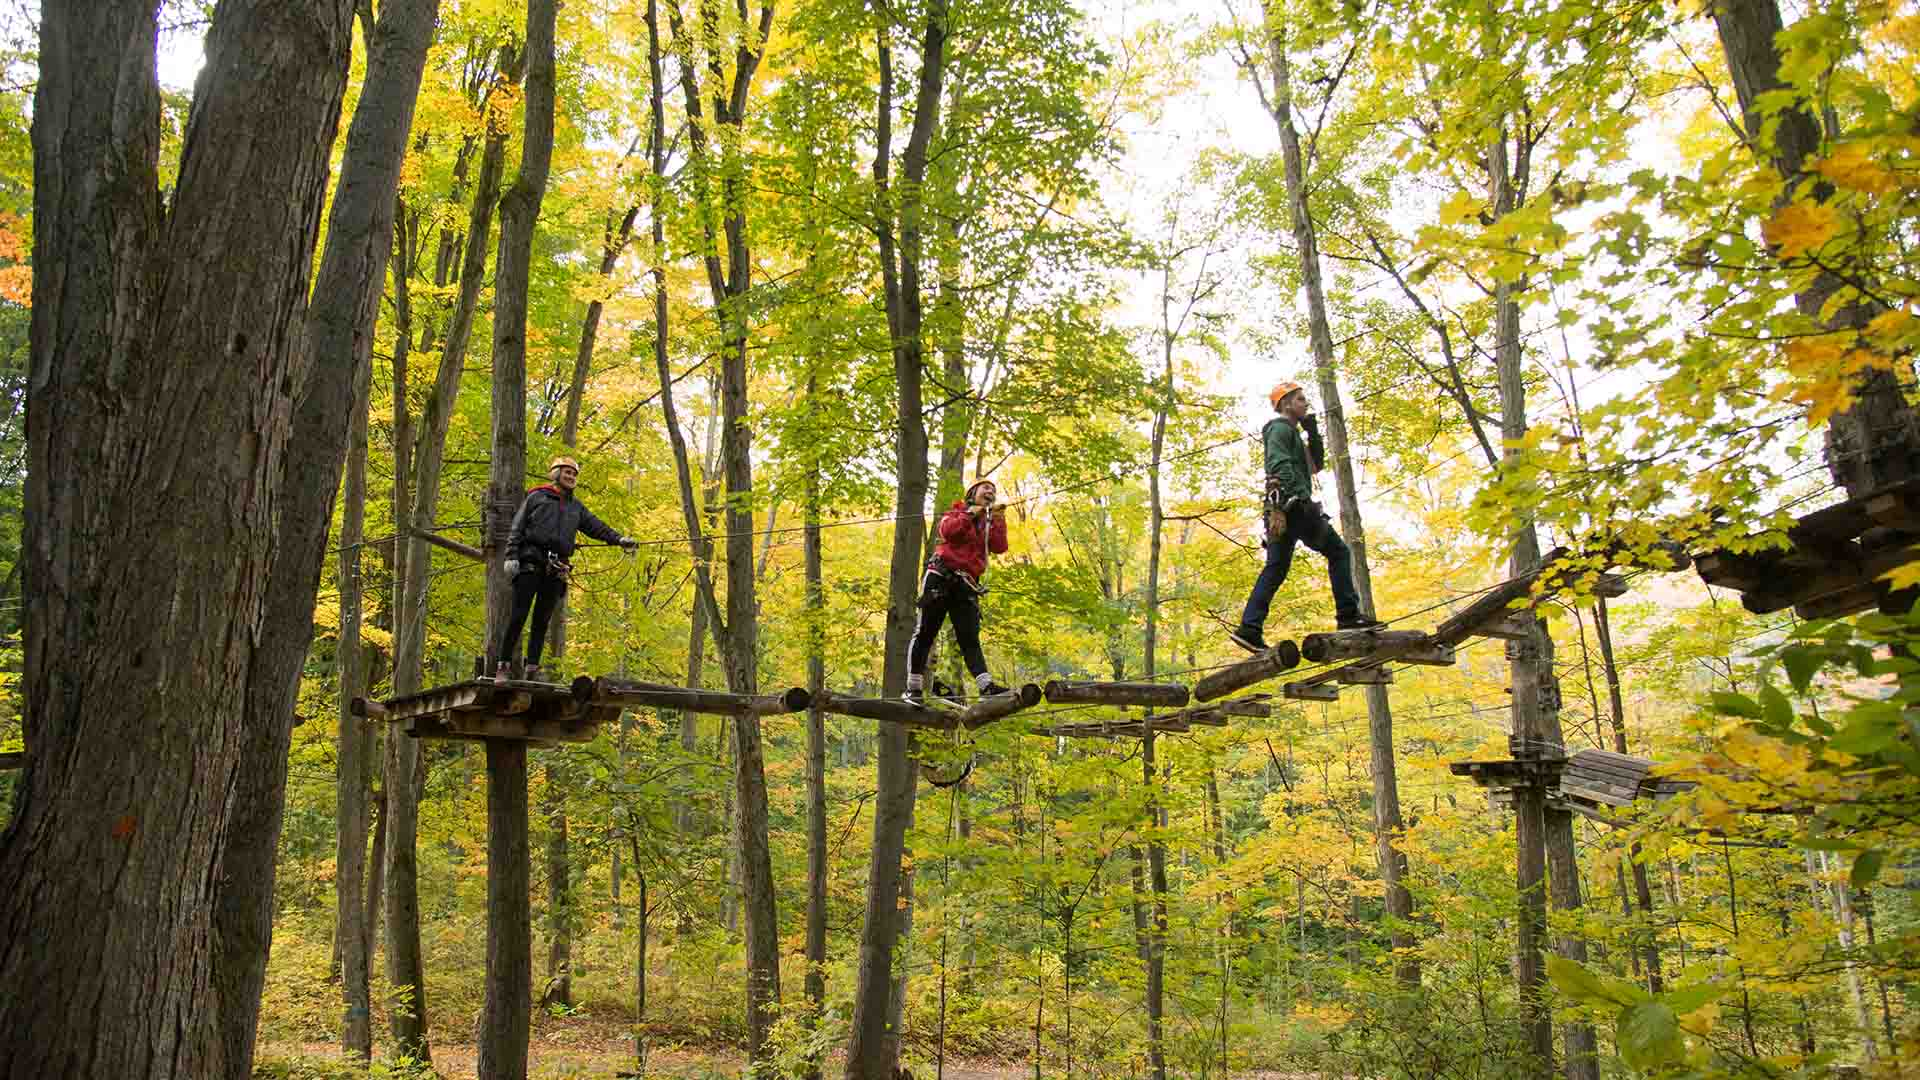 Treetop - Tour These Driving Routes This Fall